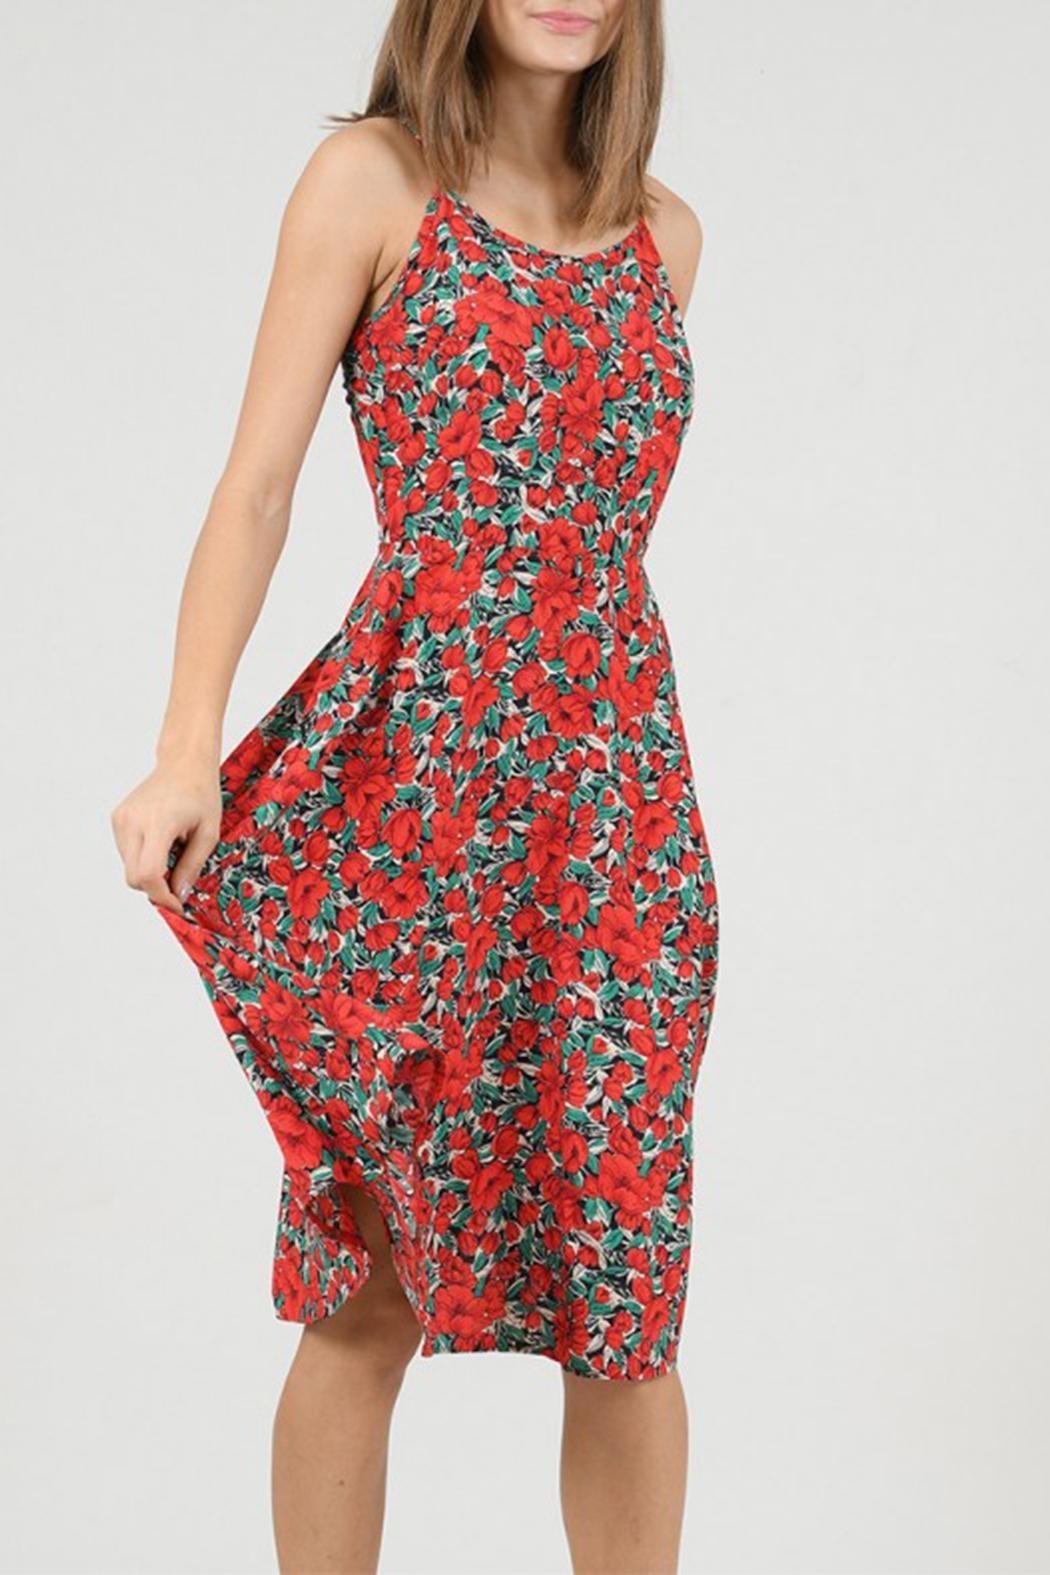 Molly Bracken Floral Dress - Main Image